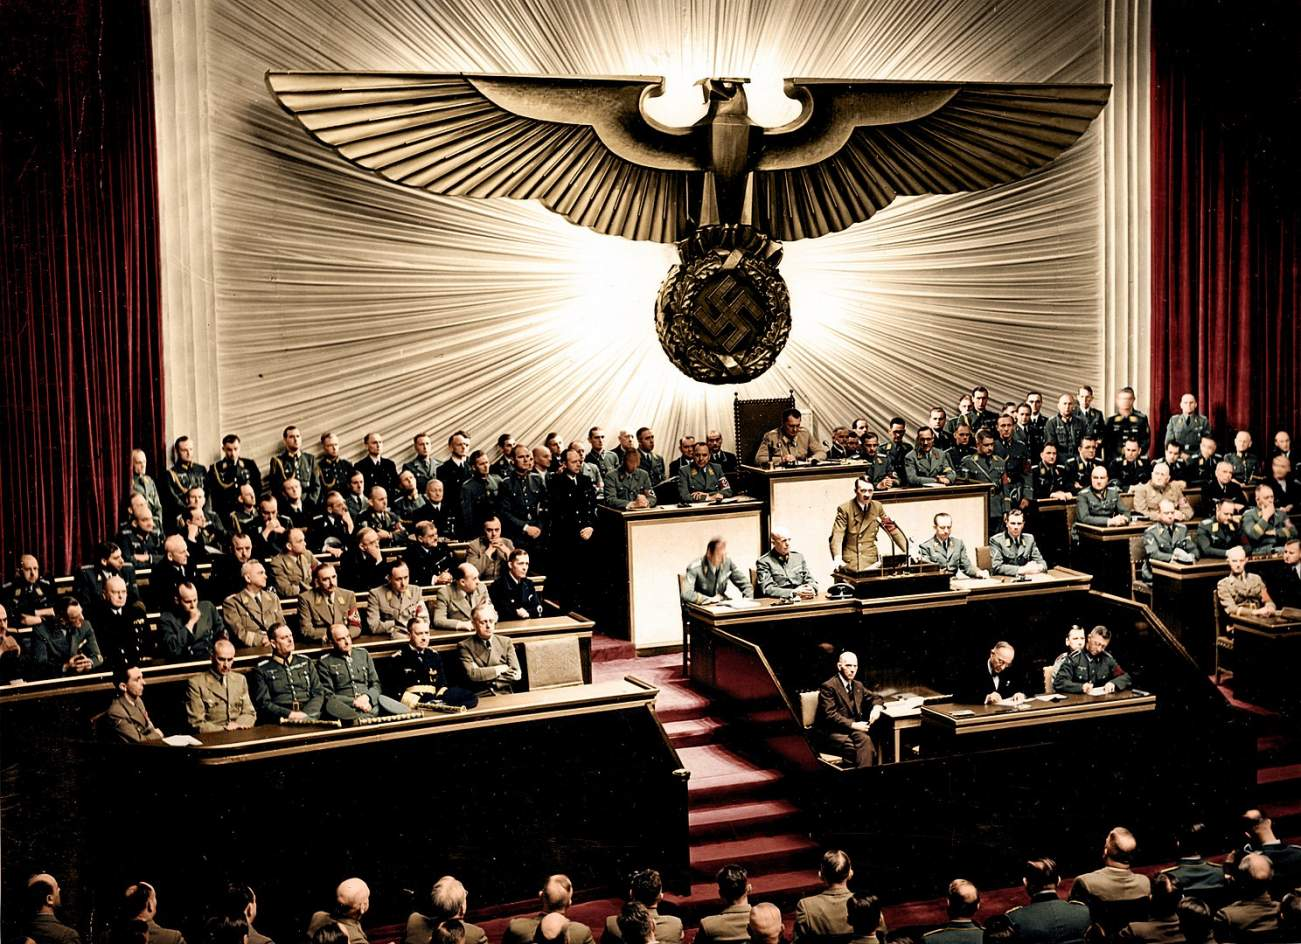 Adolf Hitler was the Biggest Reason Germany Lost World War Two